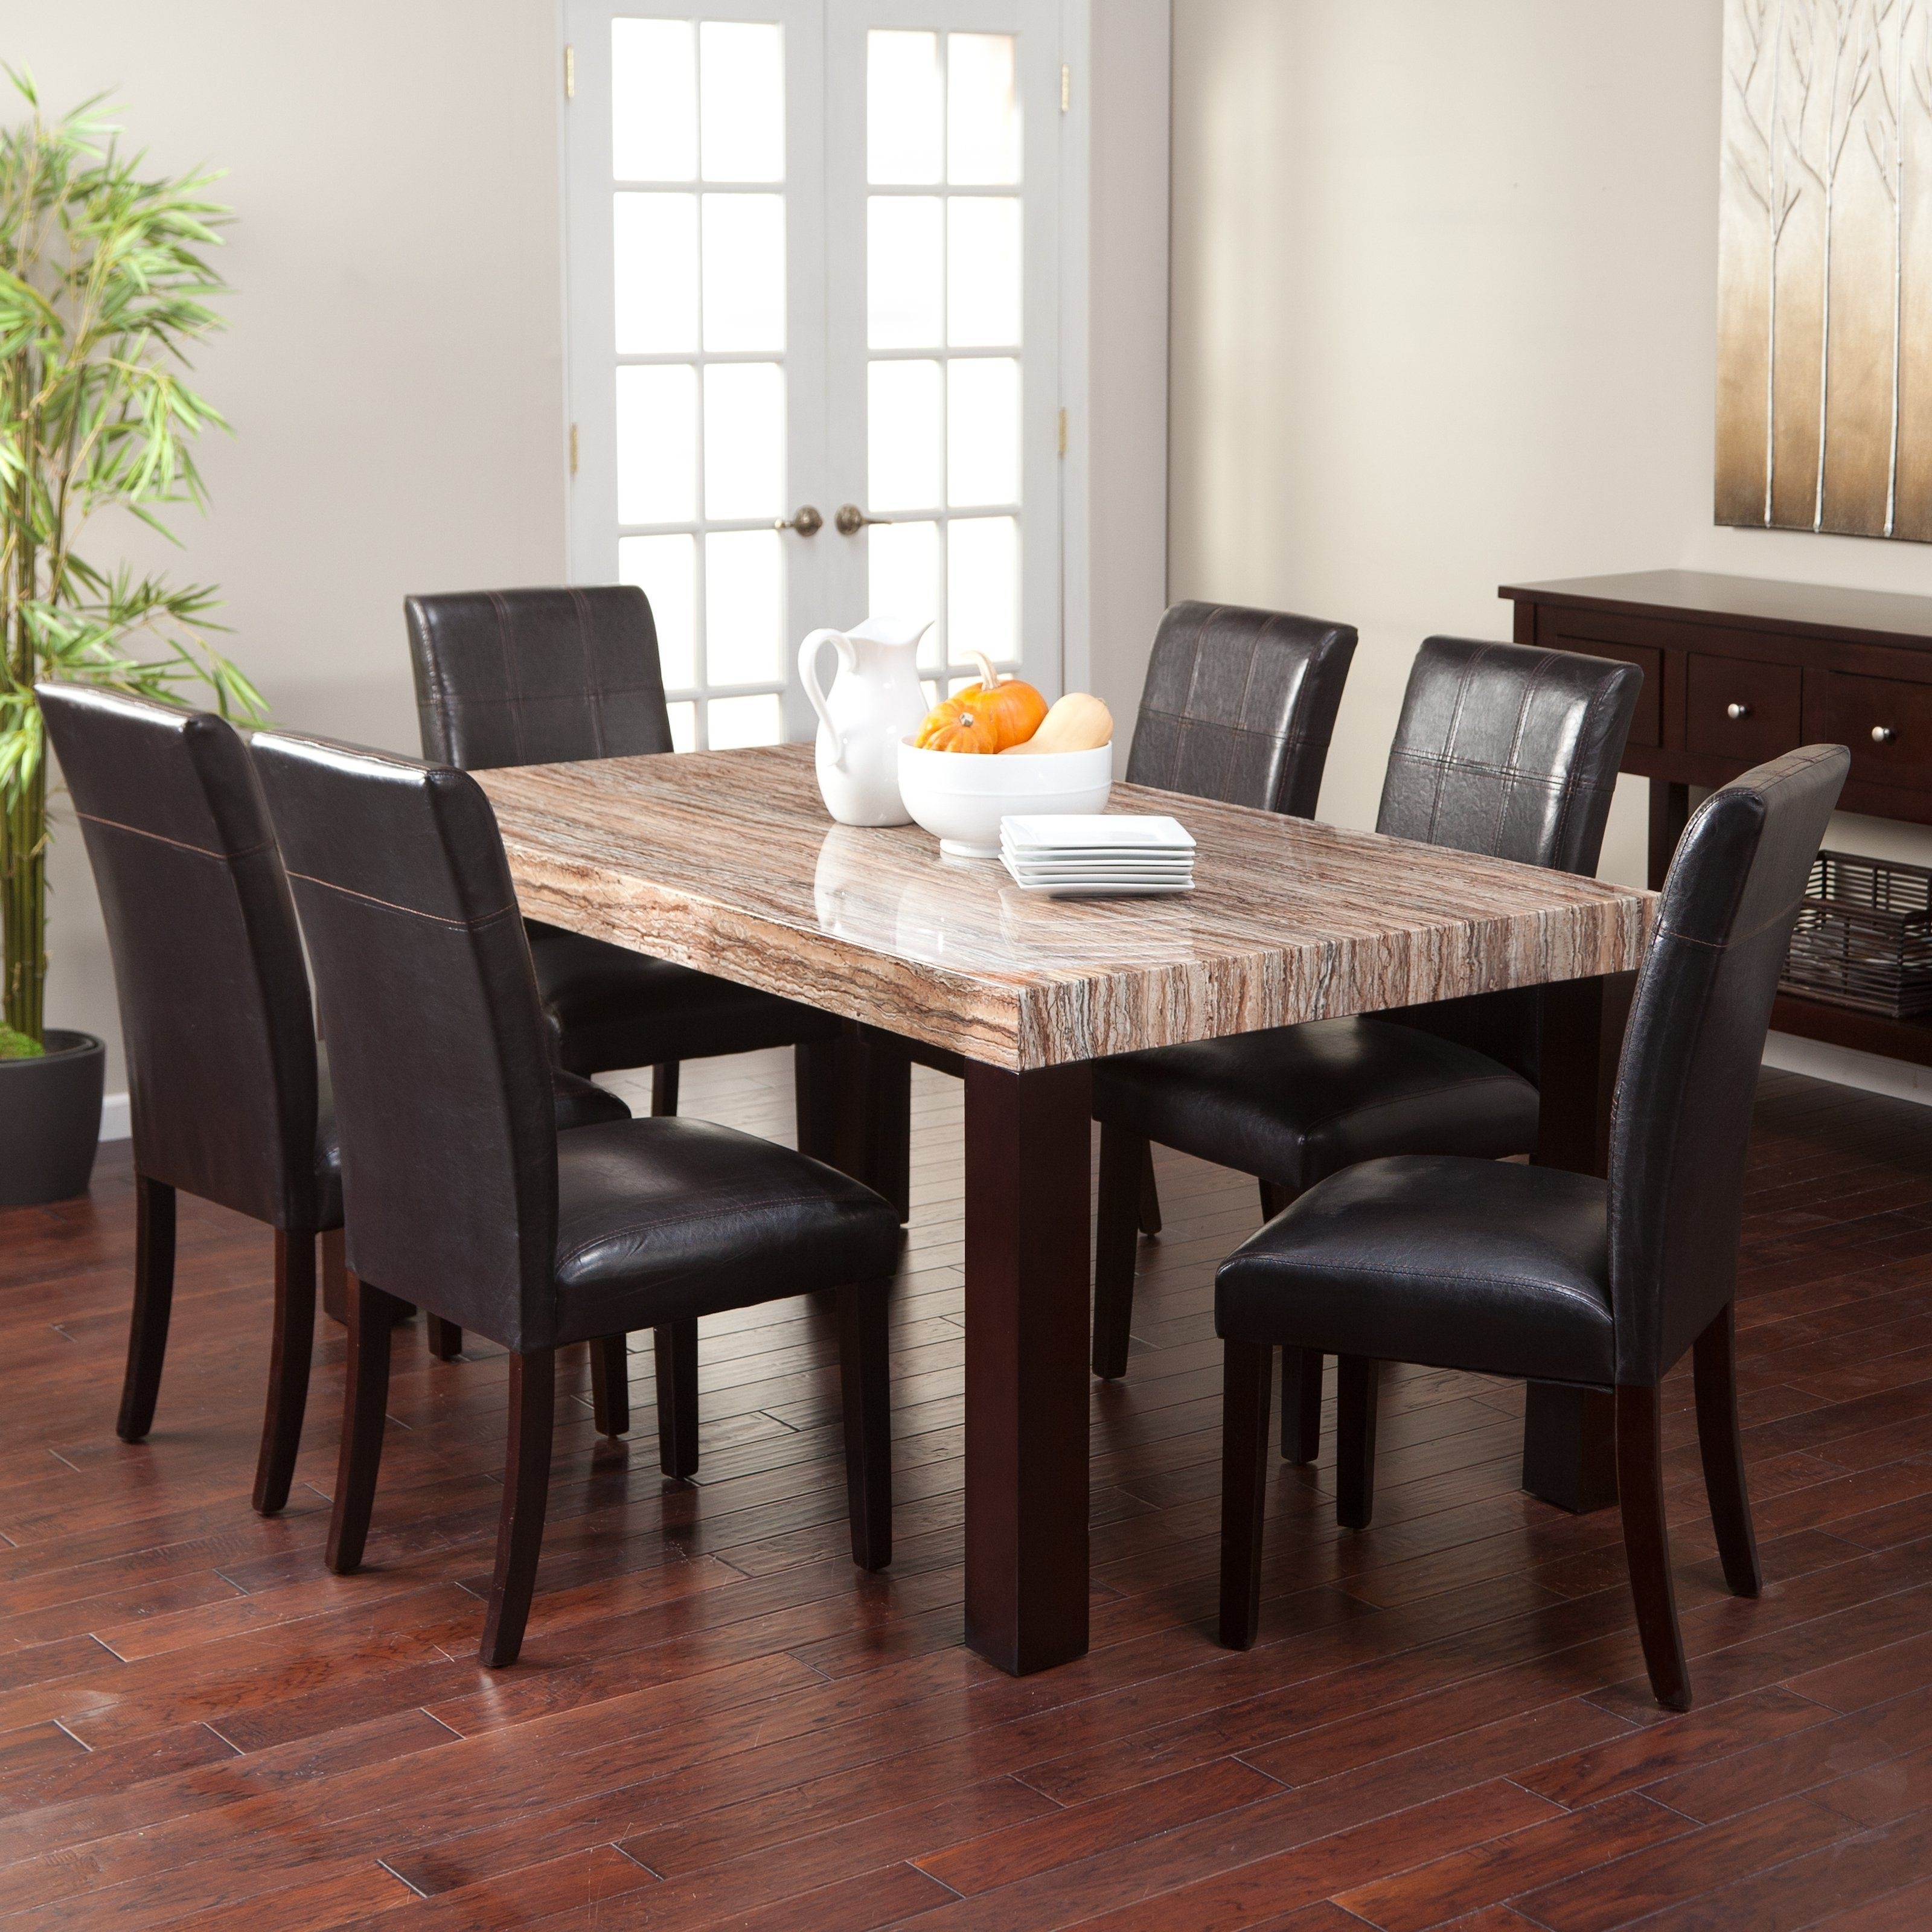 Famous Carmine 7 Piece Dining Table Set – With Its Creamy Caramel Colored In Palazzo 7 Piece Rectangle Dining Sets With Joss Side Chairs (View 6 of 25)